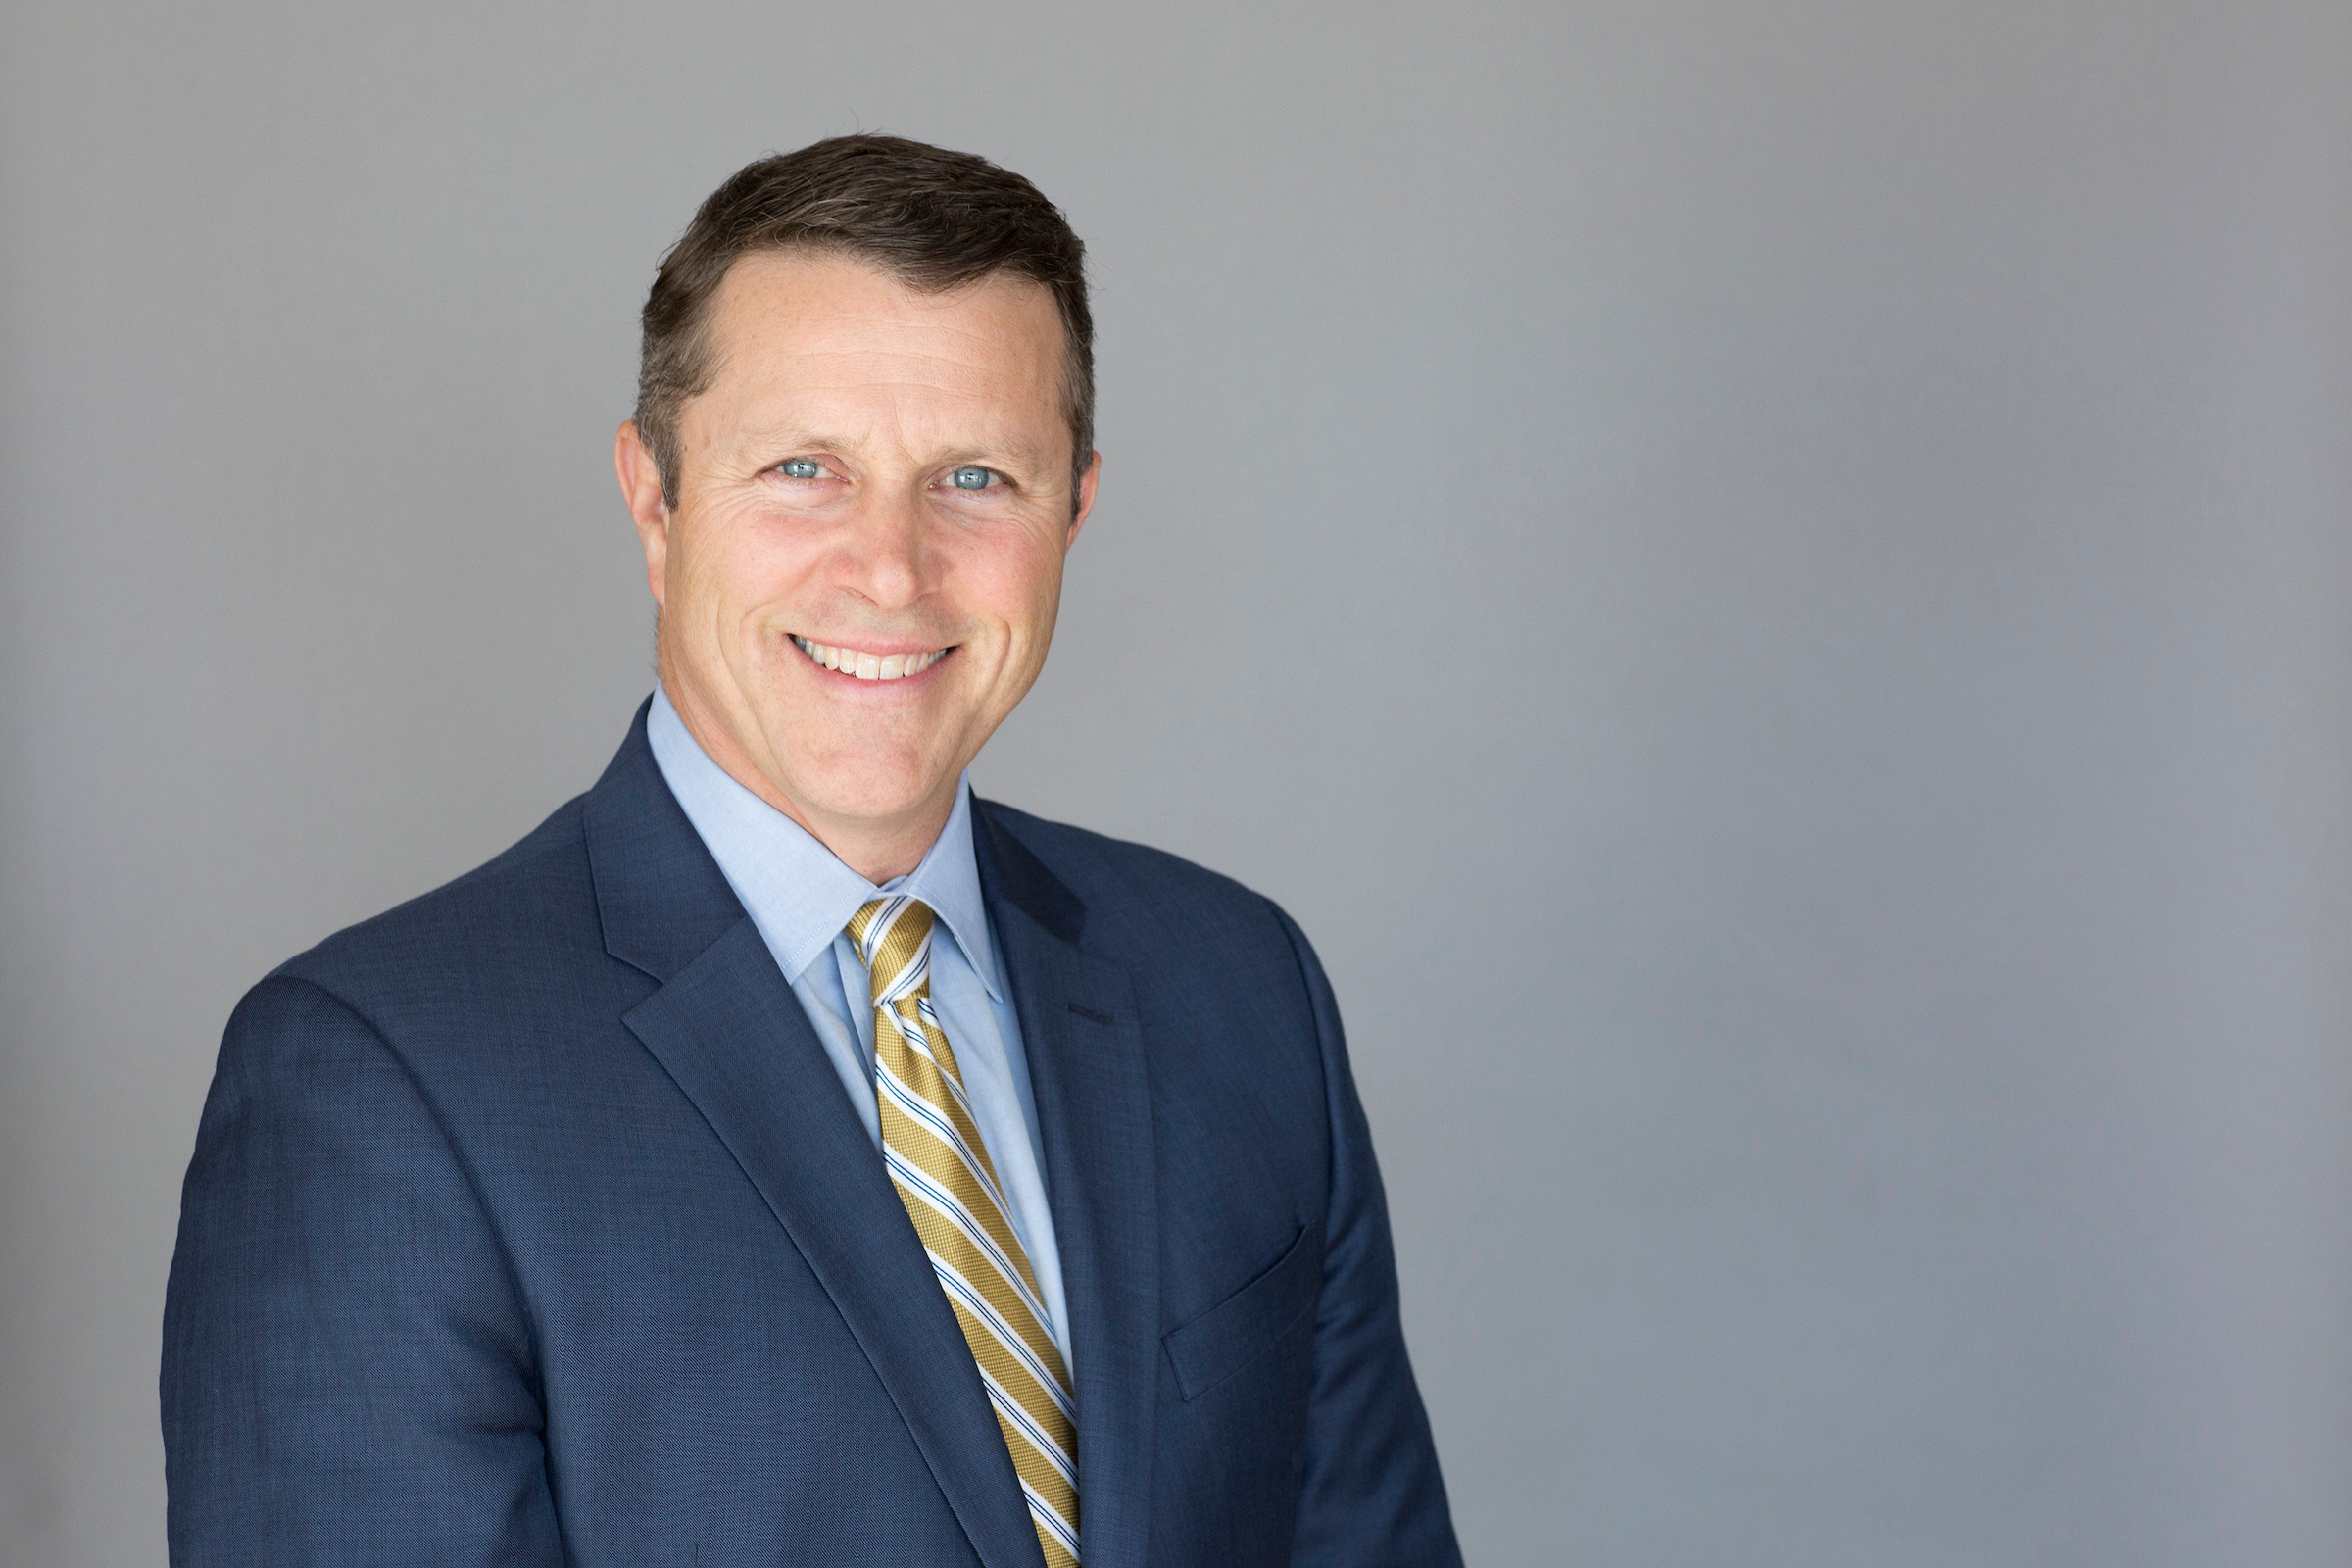 Symetra promoted Phil Bouvier to vice president, Sales & Marketing for Individual Life. (Photo: Business Wire)